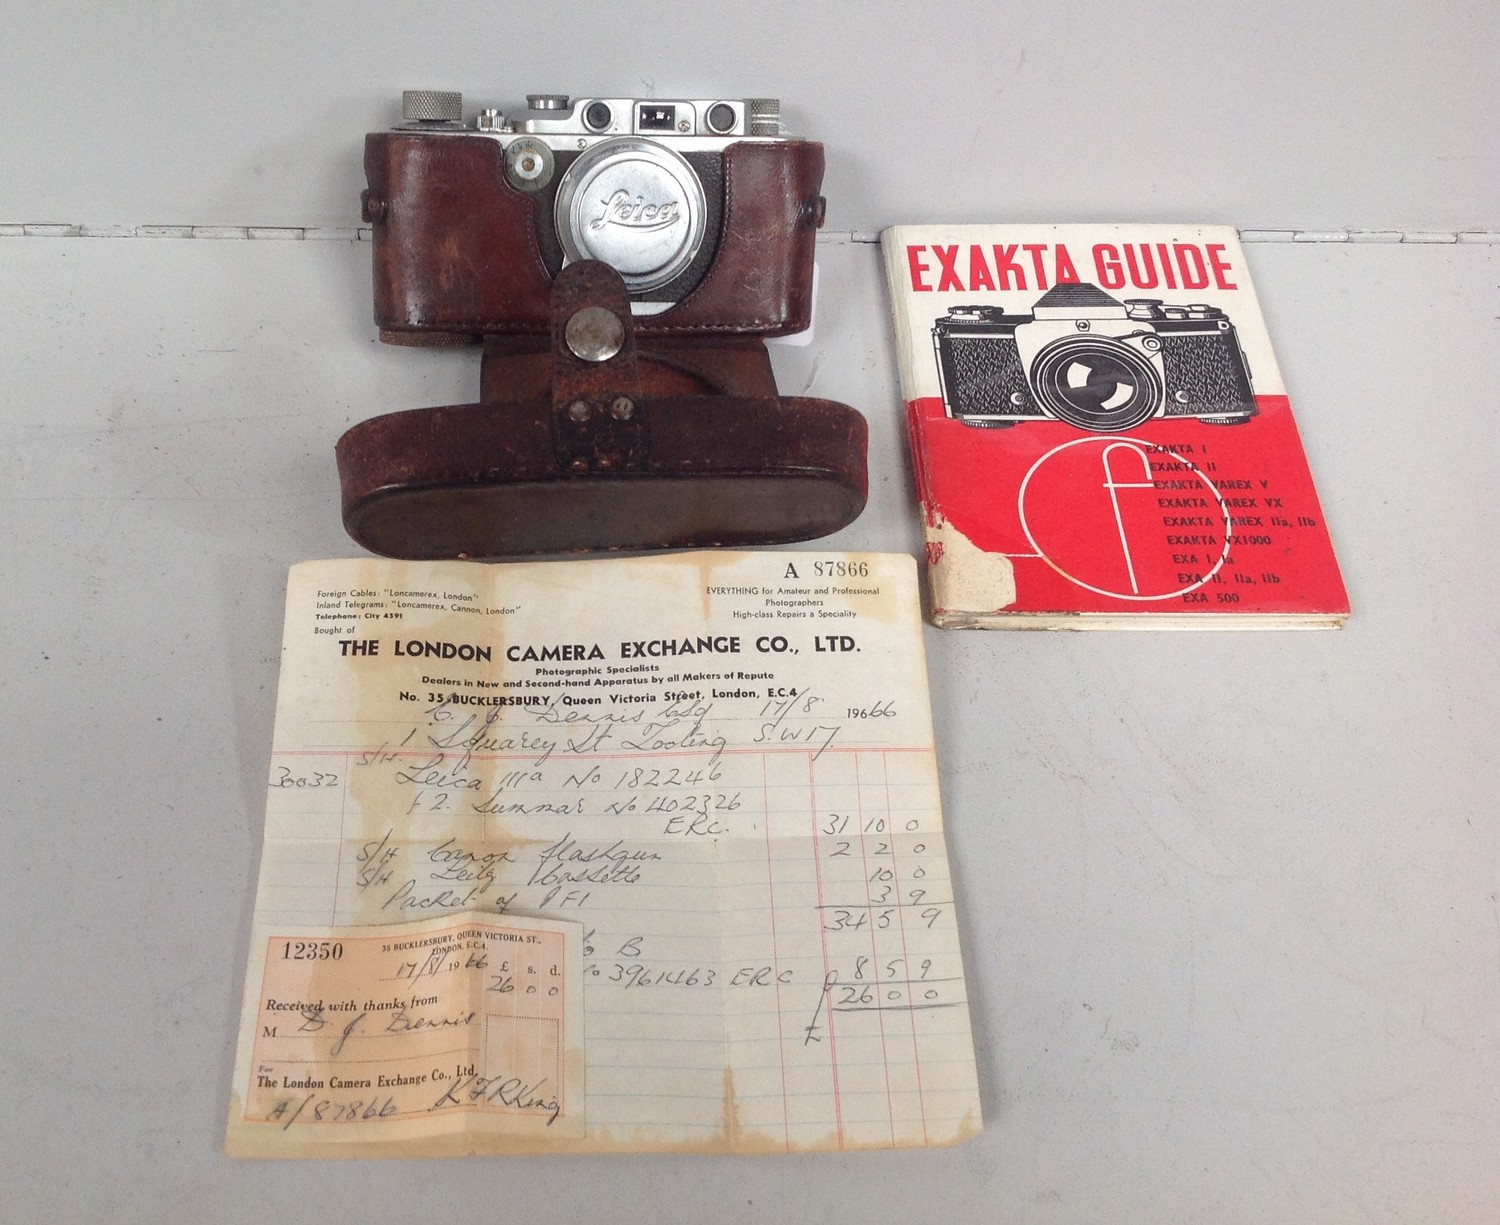 A Leica 3a camera no. 309916 fitted with a Summar 50mm F2 lens no. 376099 with original receipt from